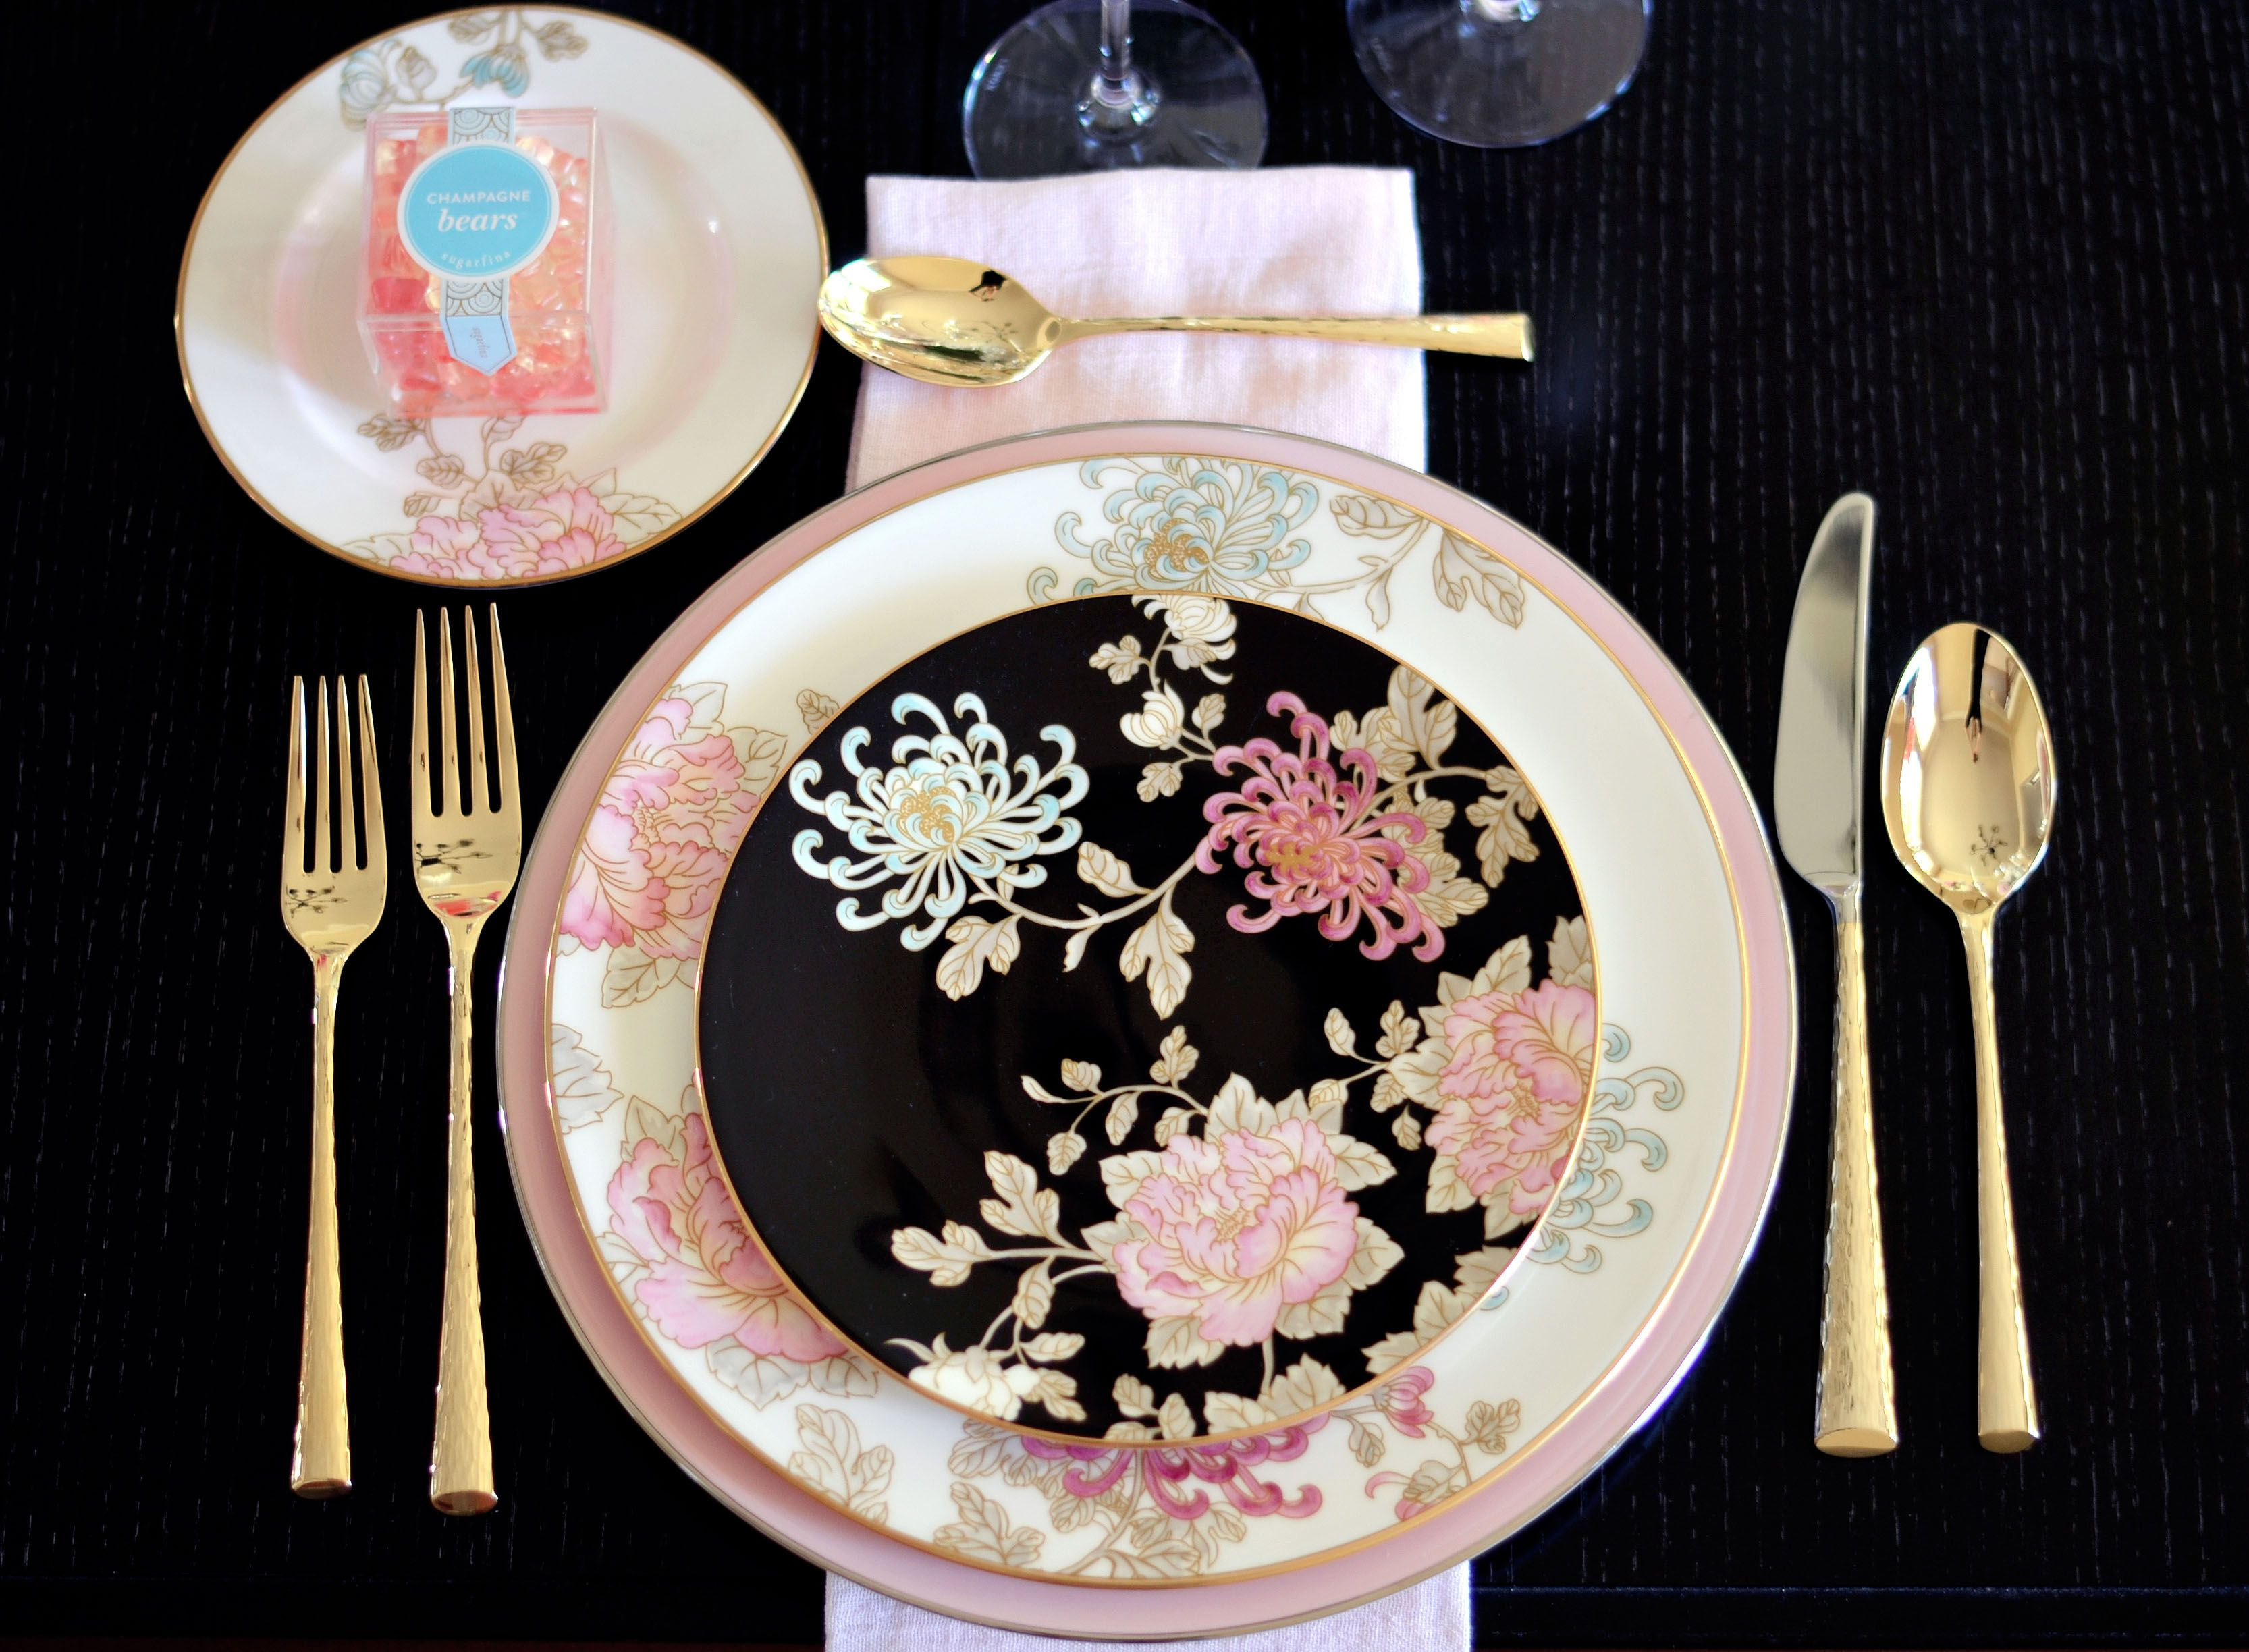 Marchesa\u0027s \u0027Painted Camellia\u0027 Dinnerware Imperial Caviar Table setting with Table + Dine by Stefanie of The Style Safari easter entertaining easter table ... & Bohemian Glam Table with Table+Dine and Marchesa \u0027Painted Camellia ...